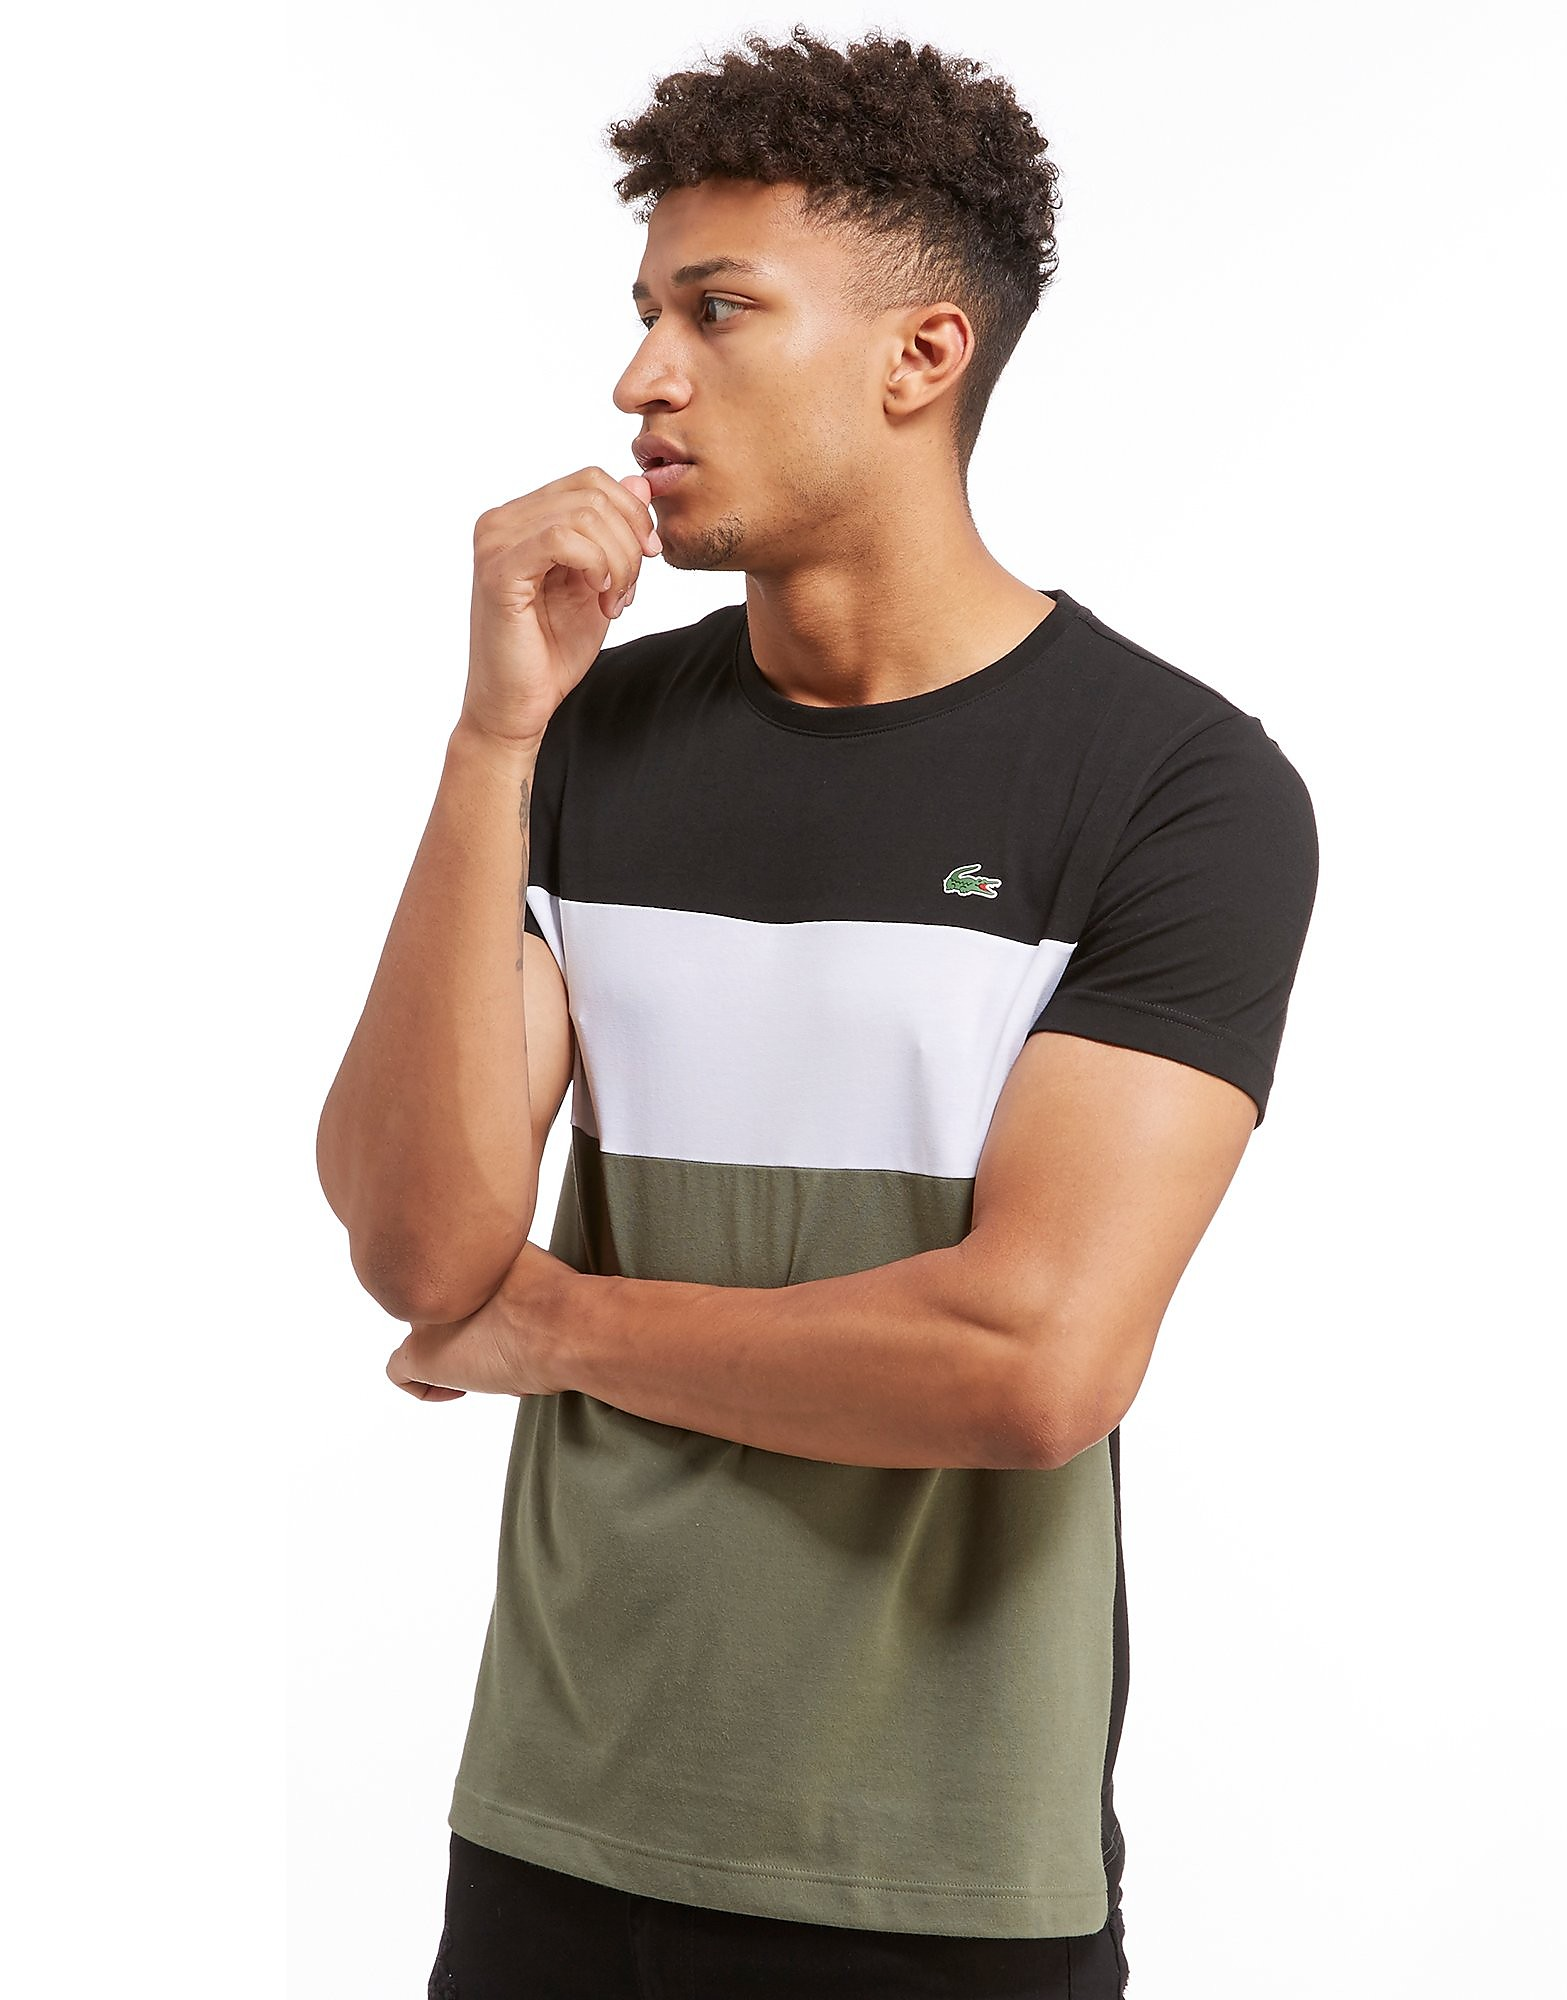 Lacoste T-shirt Colourblock Homme